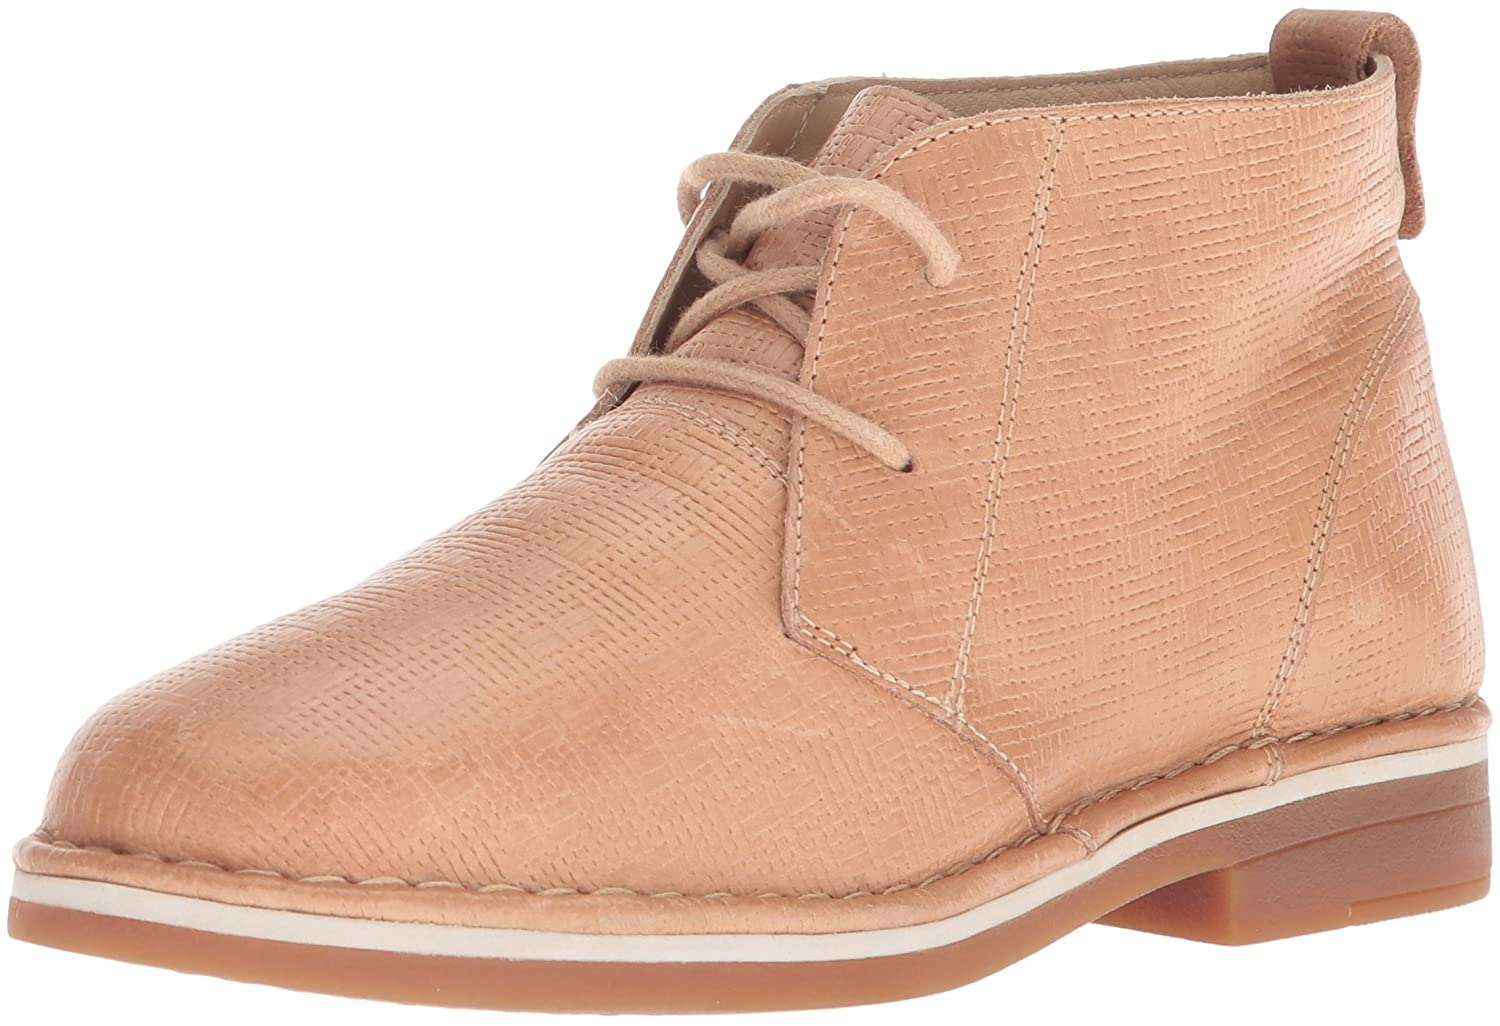 Hush Puppies Women's Cyra Catelyn Ankle Boot B0746XDSWK 8 W US|Natural Embossed Leather